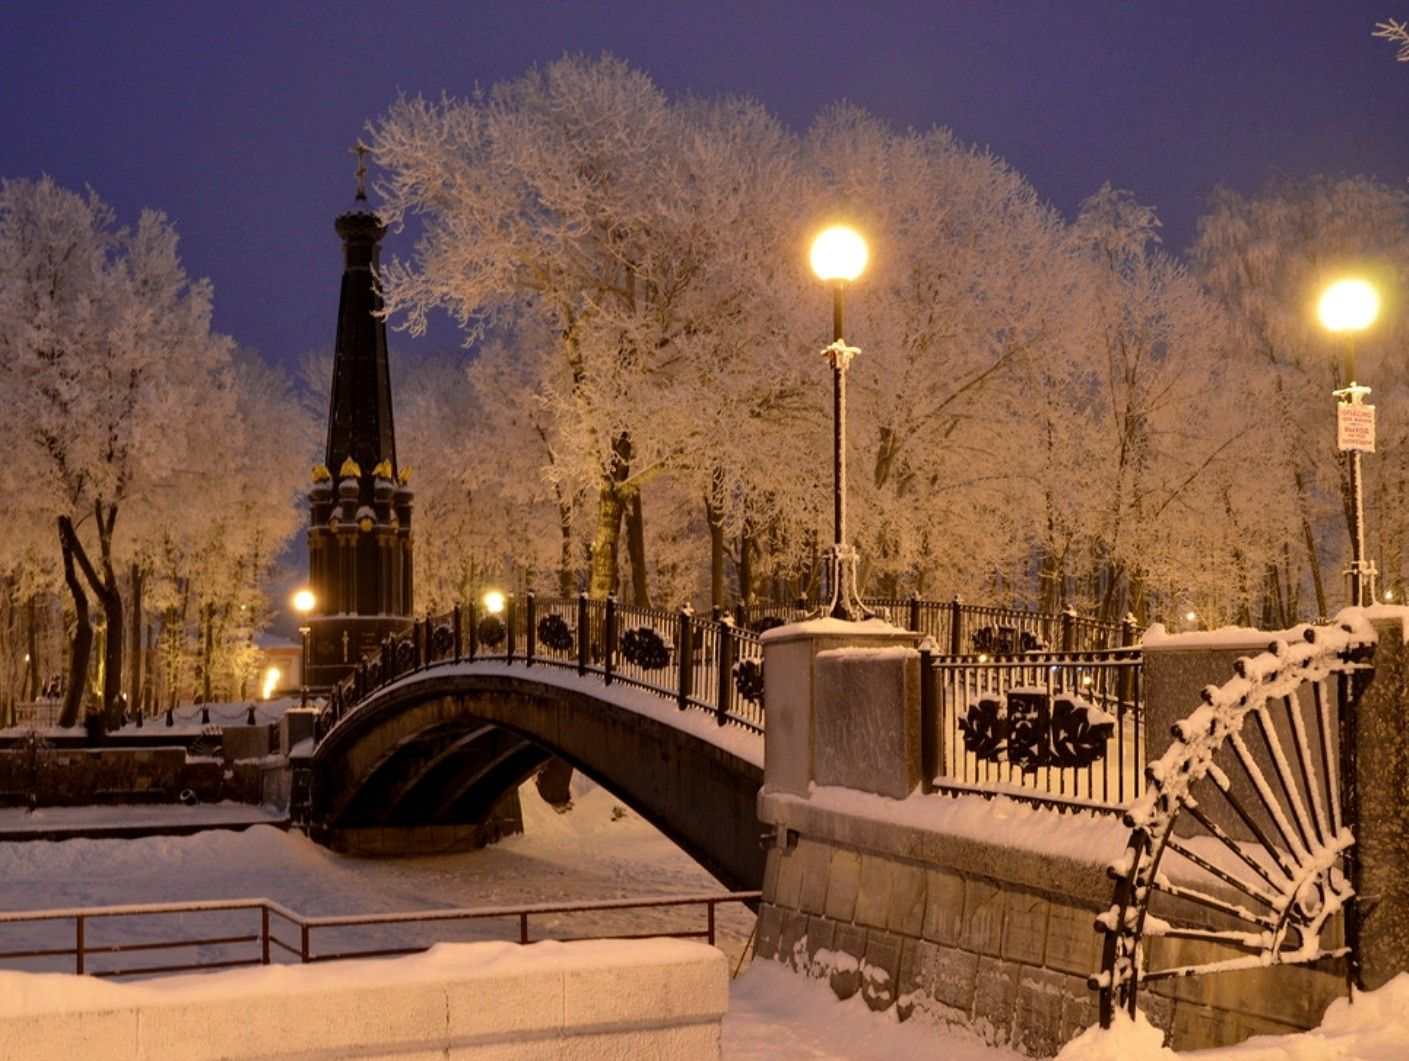 Night City Lights Snow Ice Cold Winter Profile Picture Ideas City Lights At Night City Wallpaper Free Winter Wallpaper